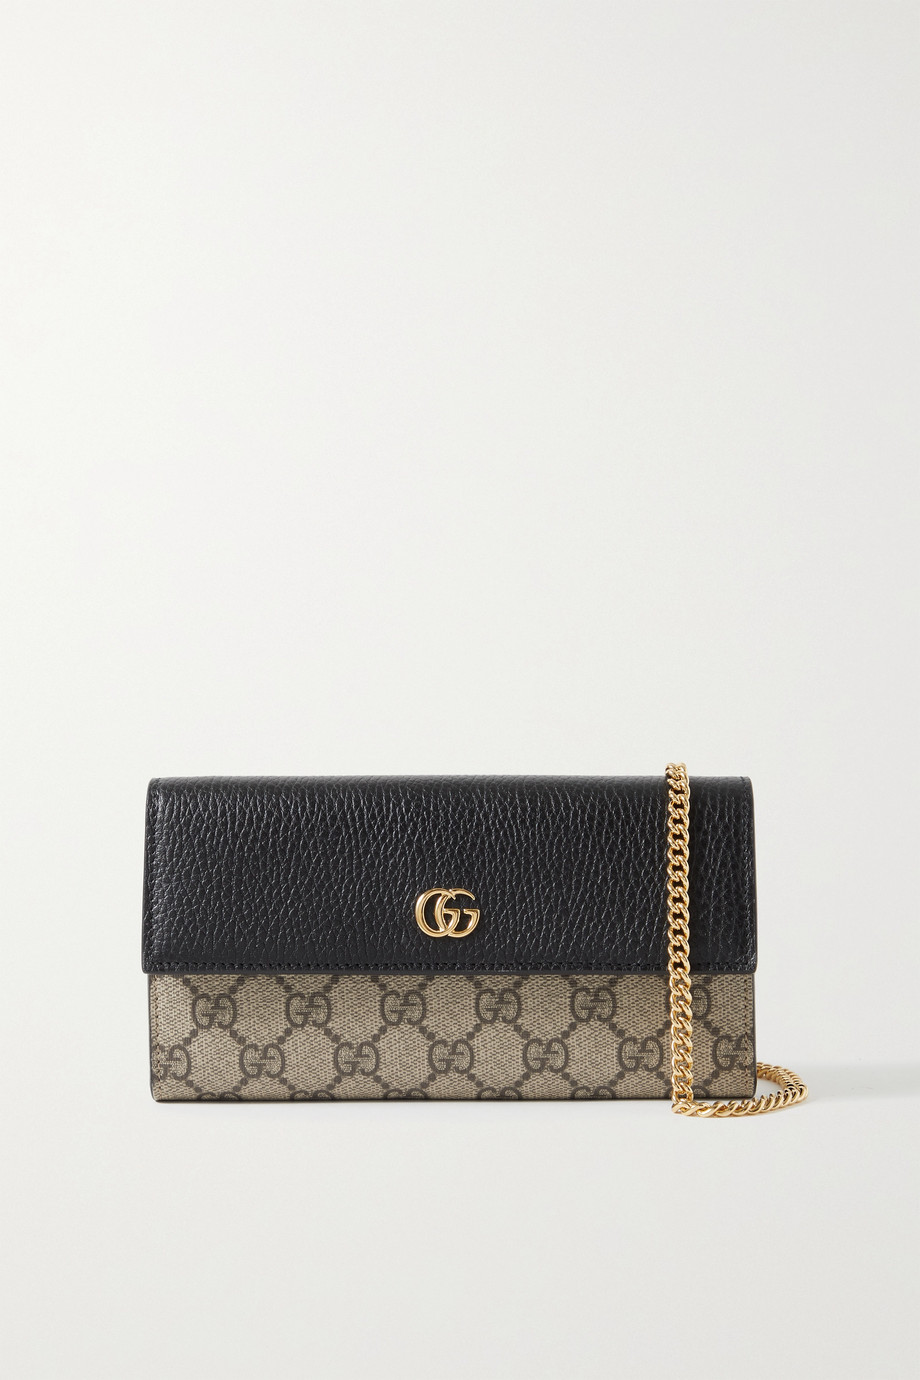 GUCCI GG Marmont Petite textured-leather and printed coated-canvas shoulder bag